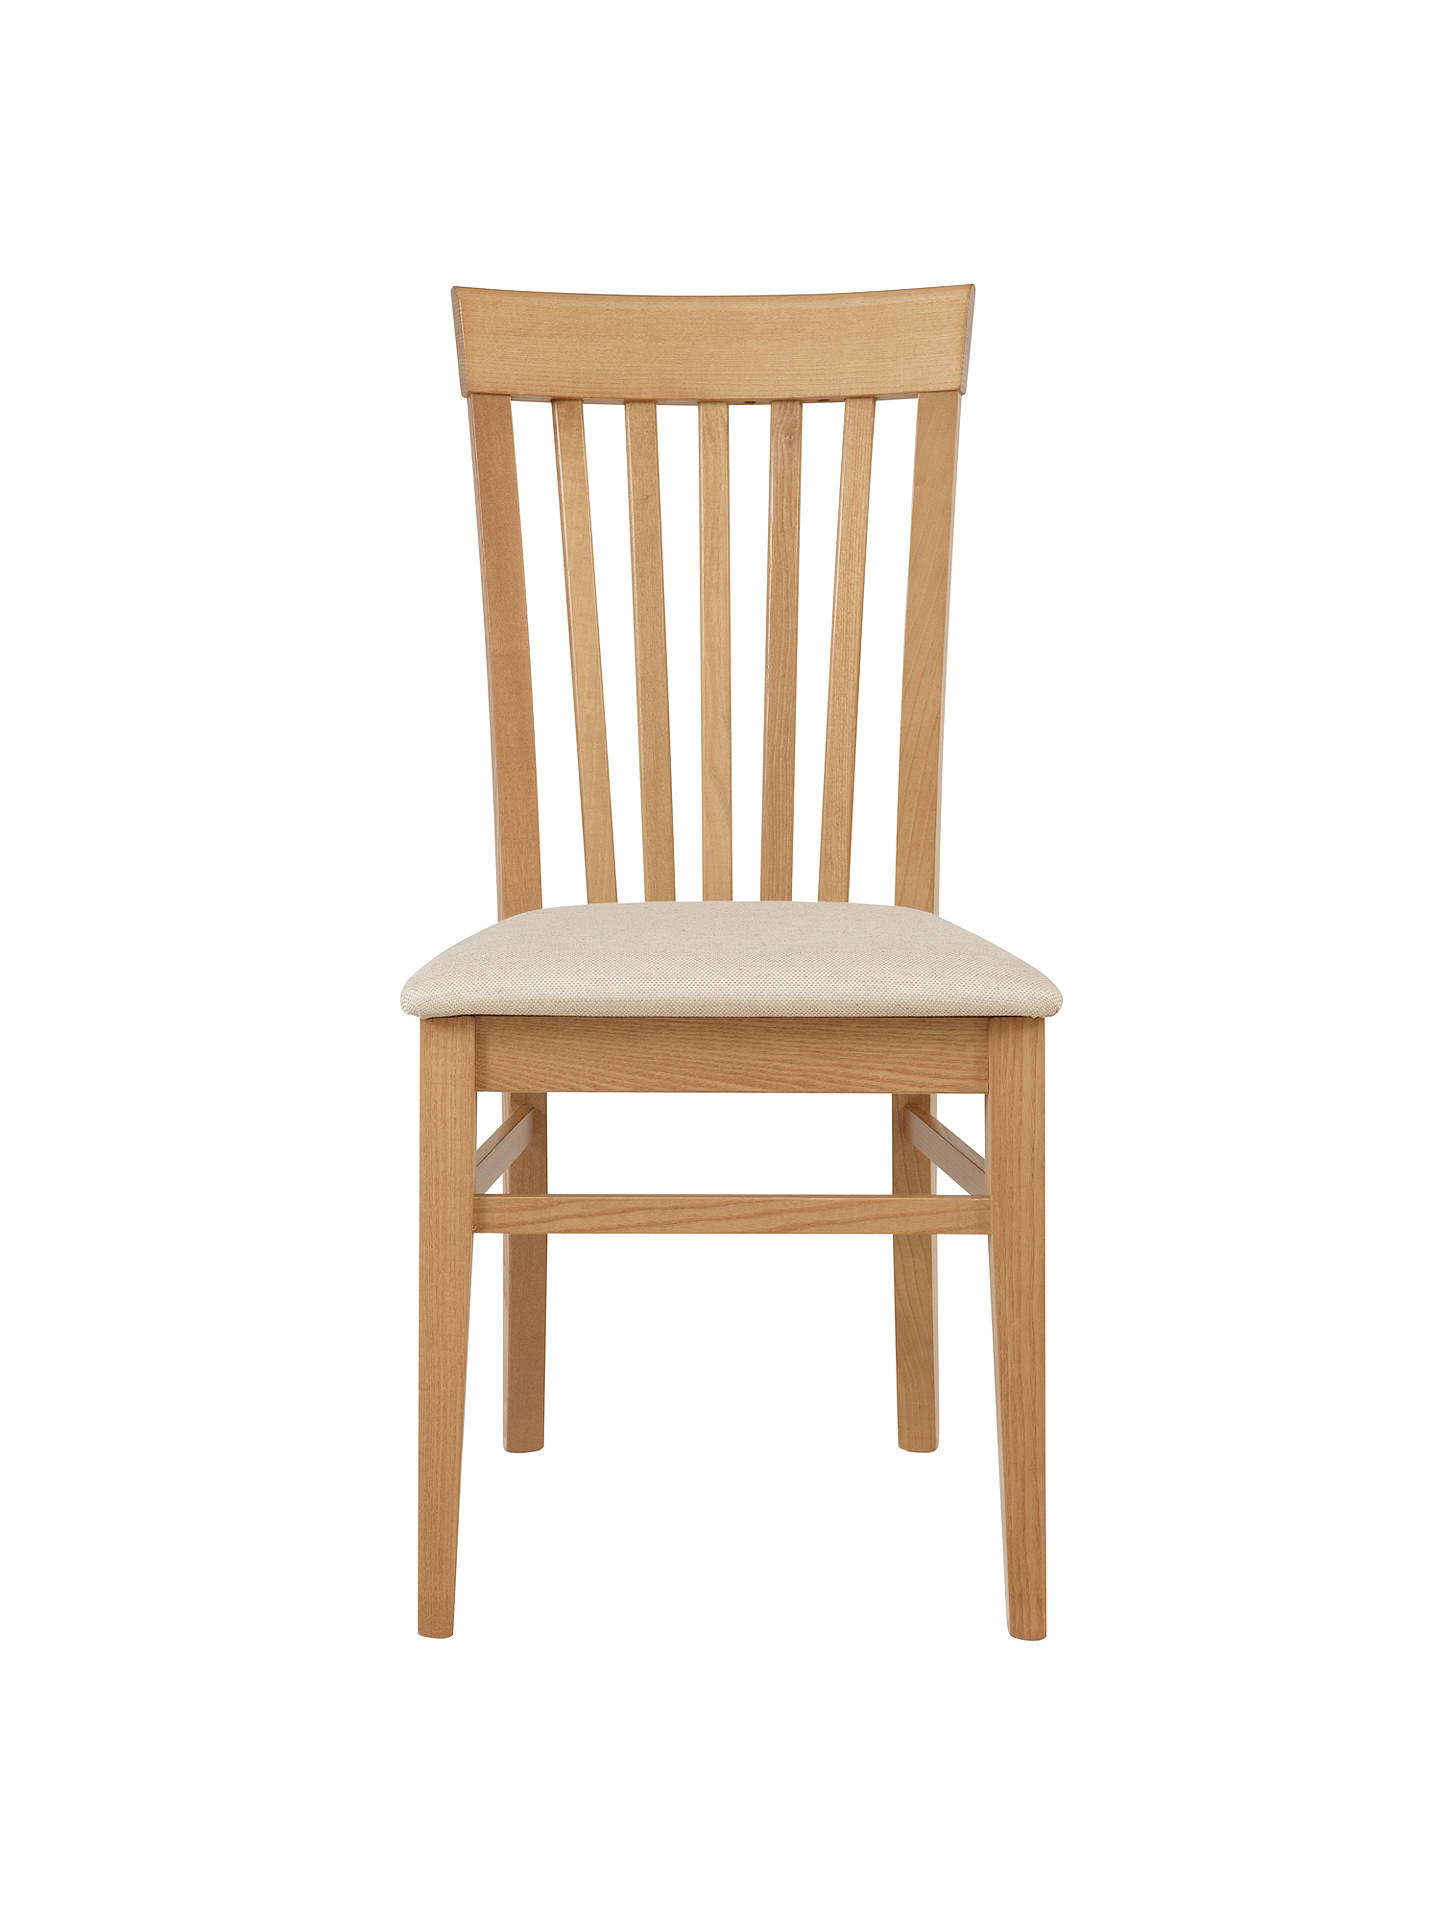 Buy John Lewis Elliot Dining Chair, Oak Online at johnlewis.com